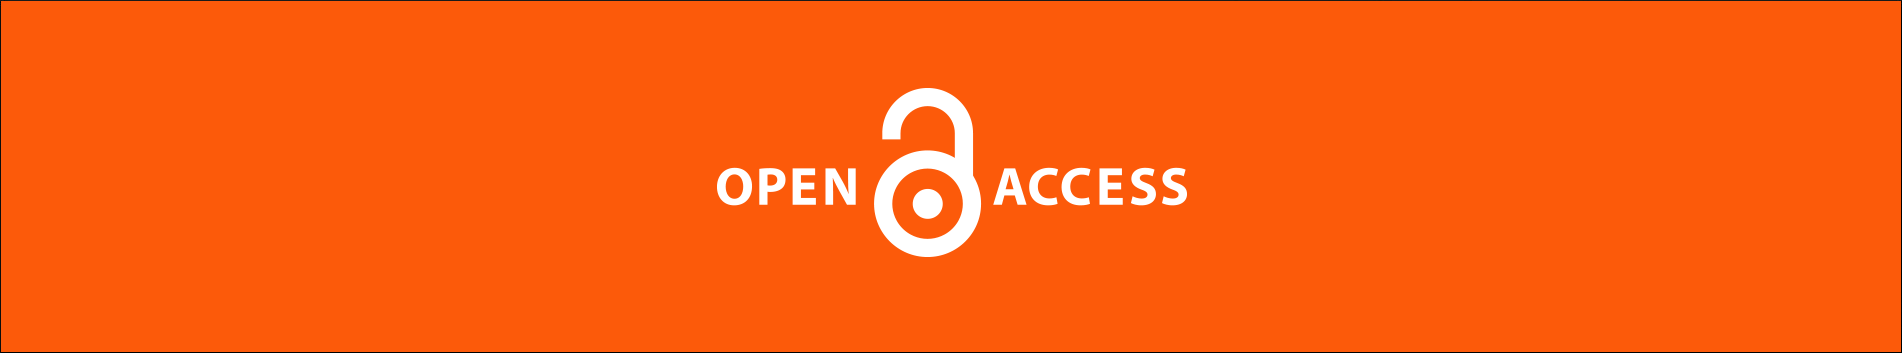 Some jottings on academic freedom and Plan S/open access feature image